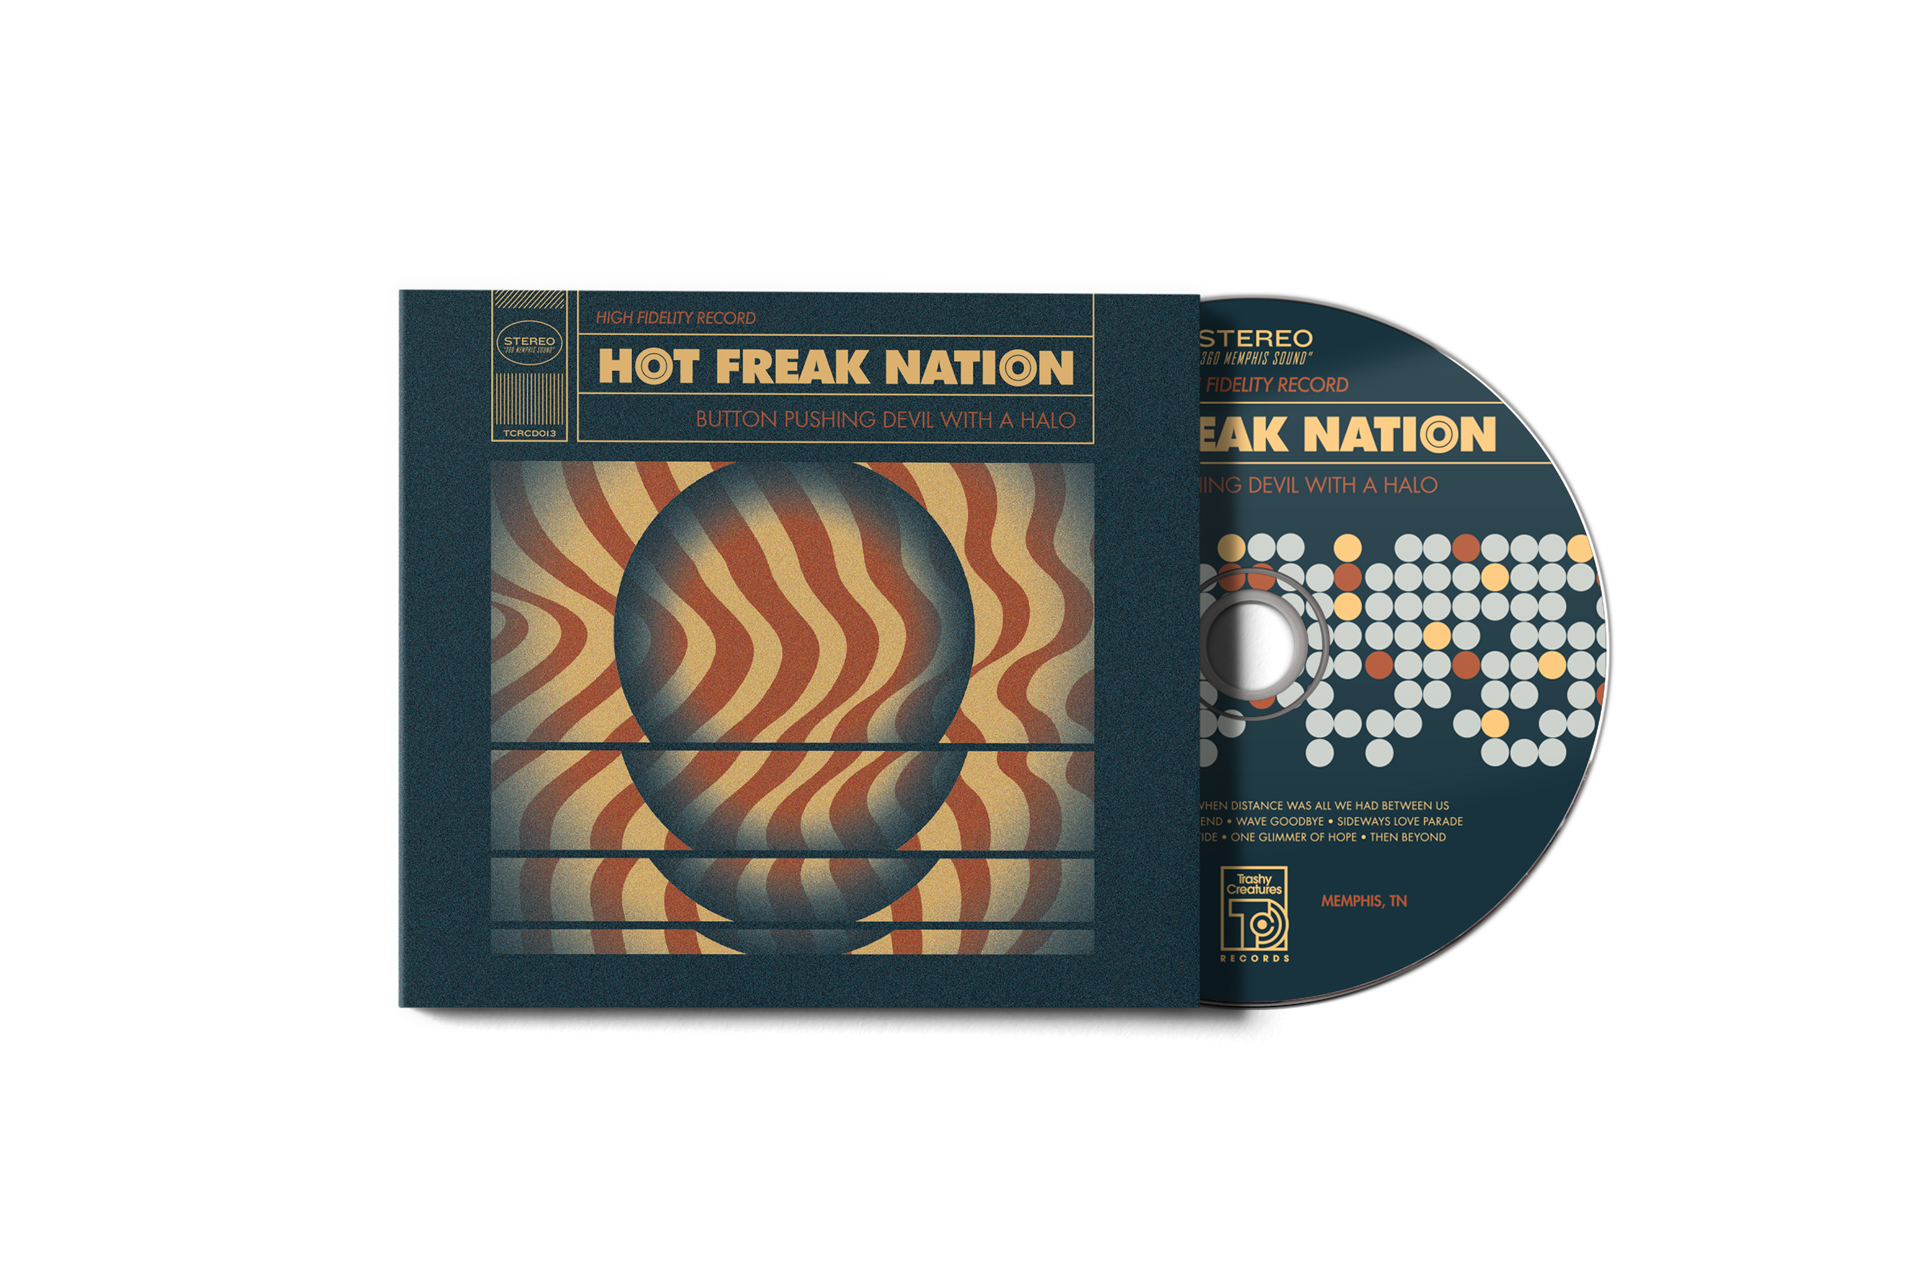 HFN-ButtonPushing-Digipak-Mockup-Cover.jpg